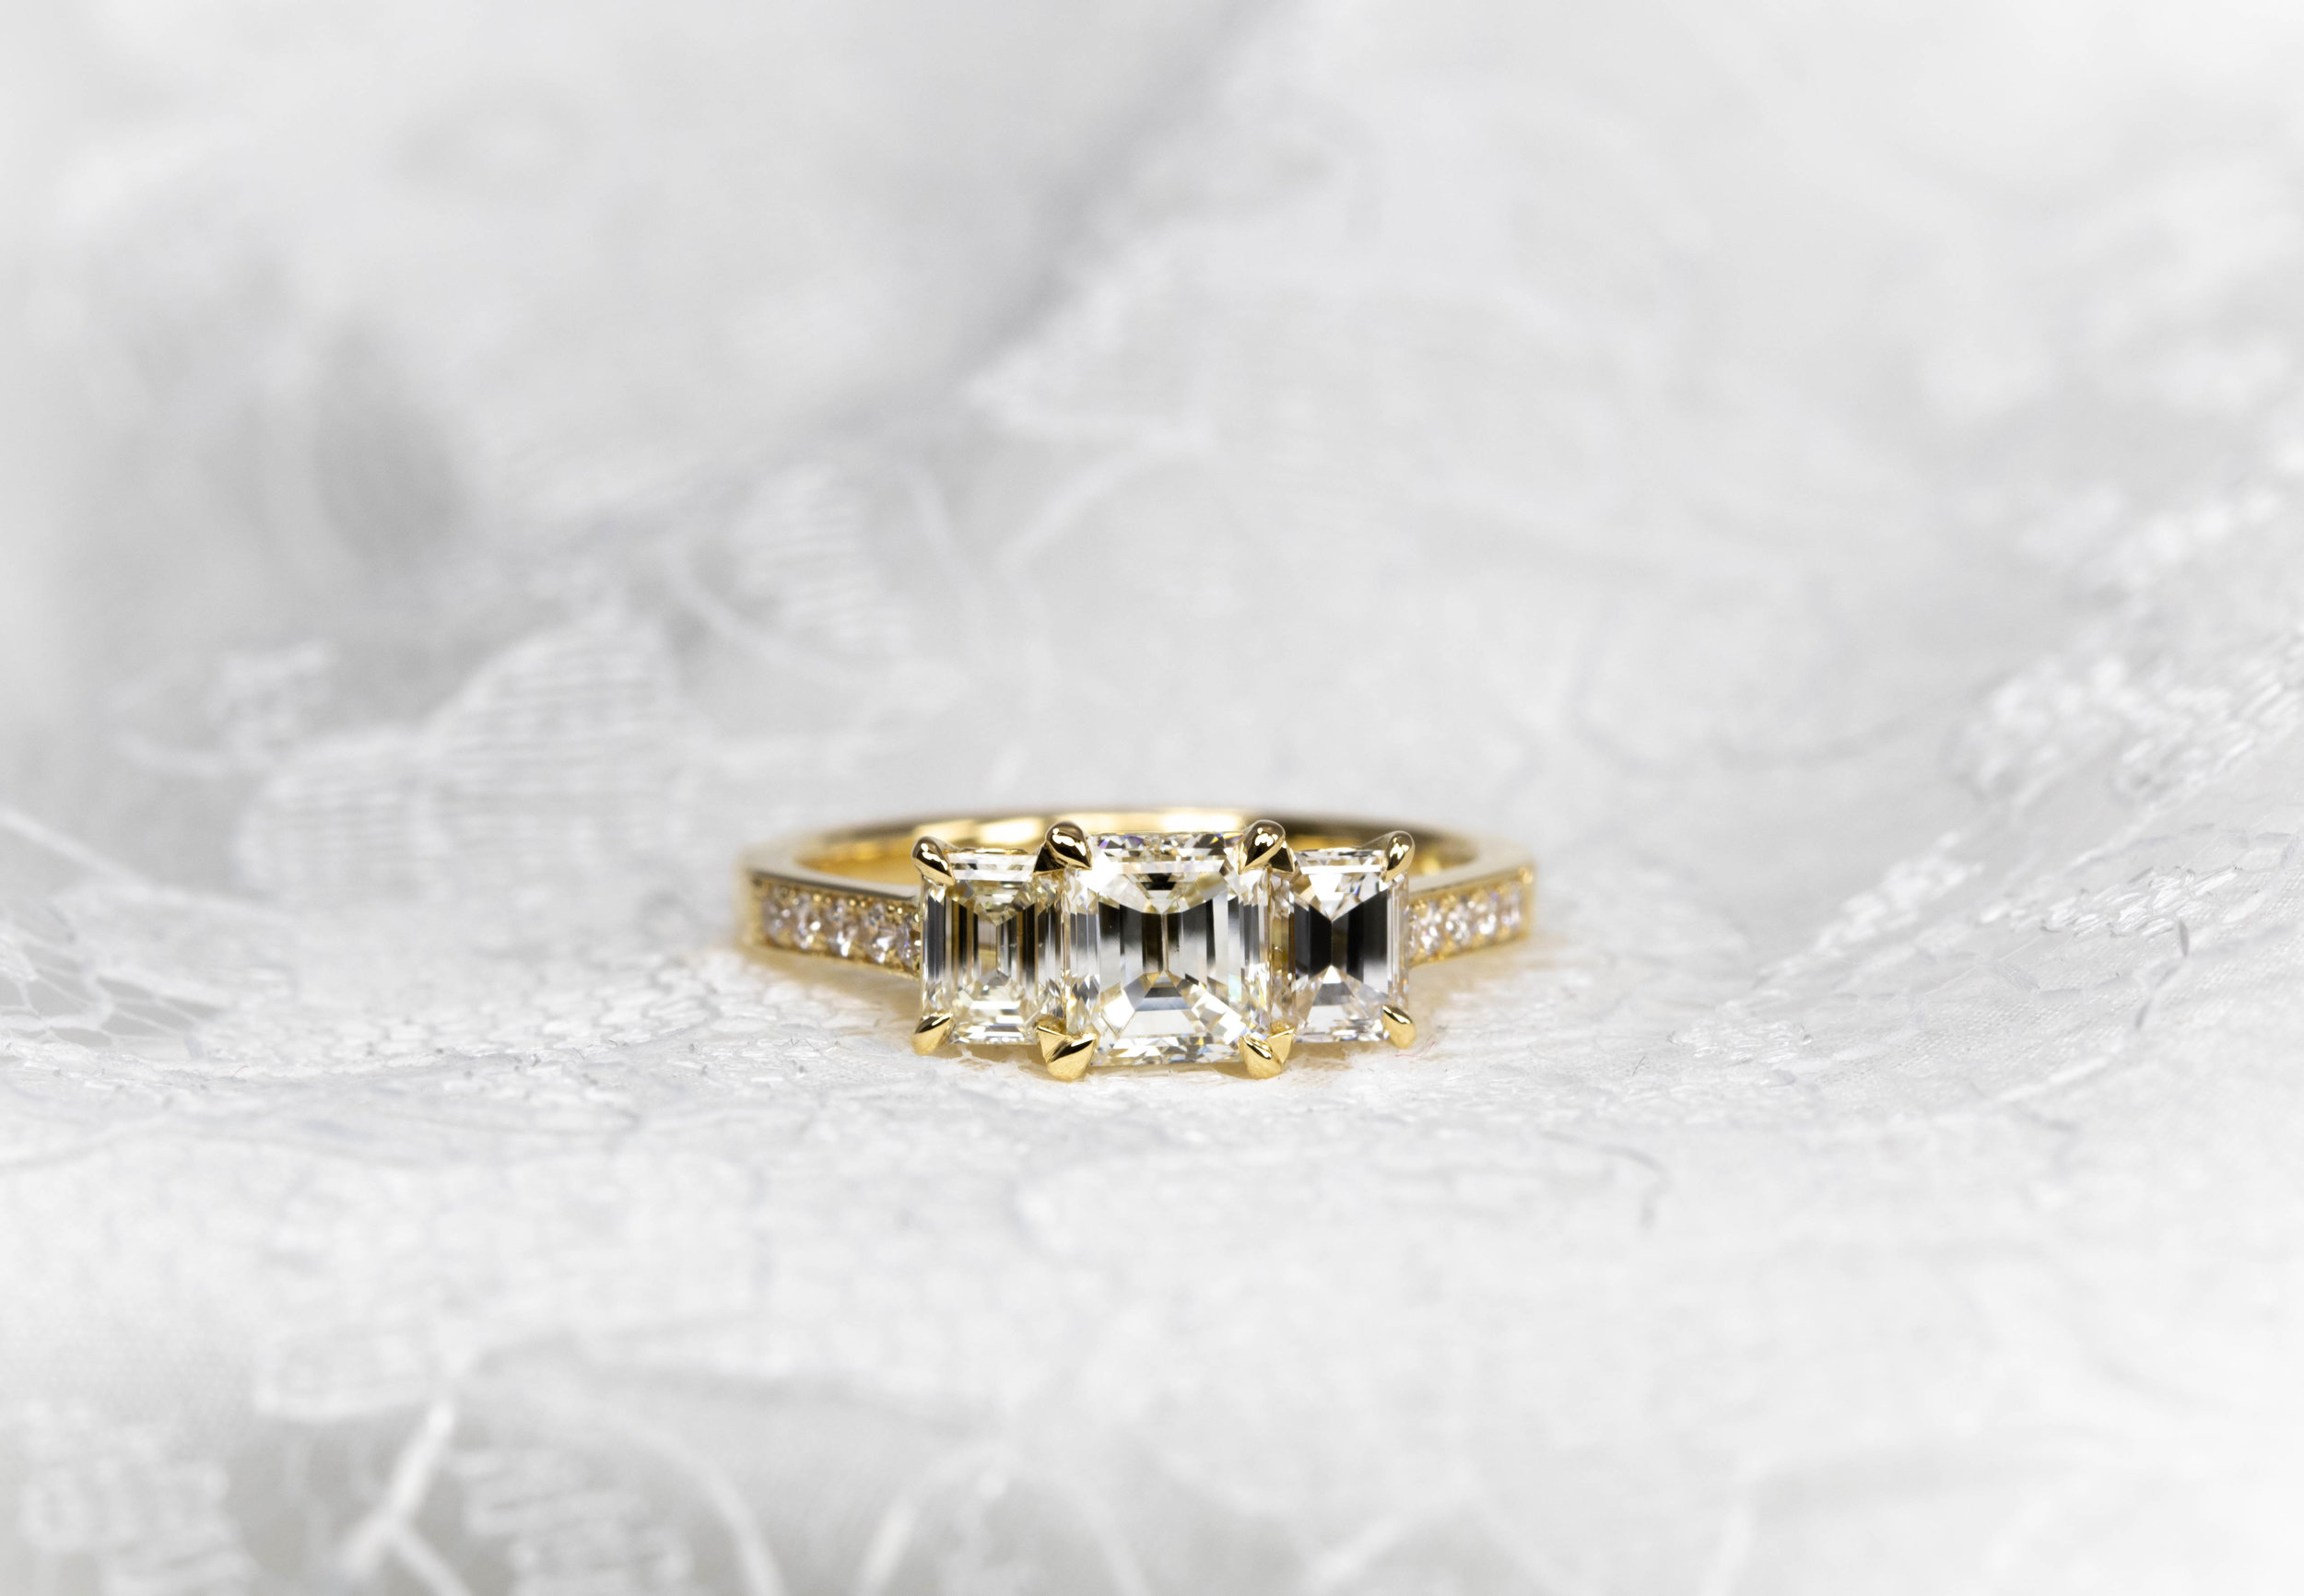 Copy of 18ct yellow gold mounted three stone emerald cut diamond ring with grain set shoulders. Made in Chichester, England.